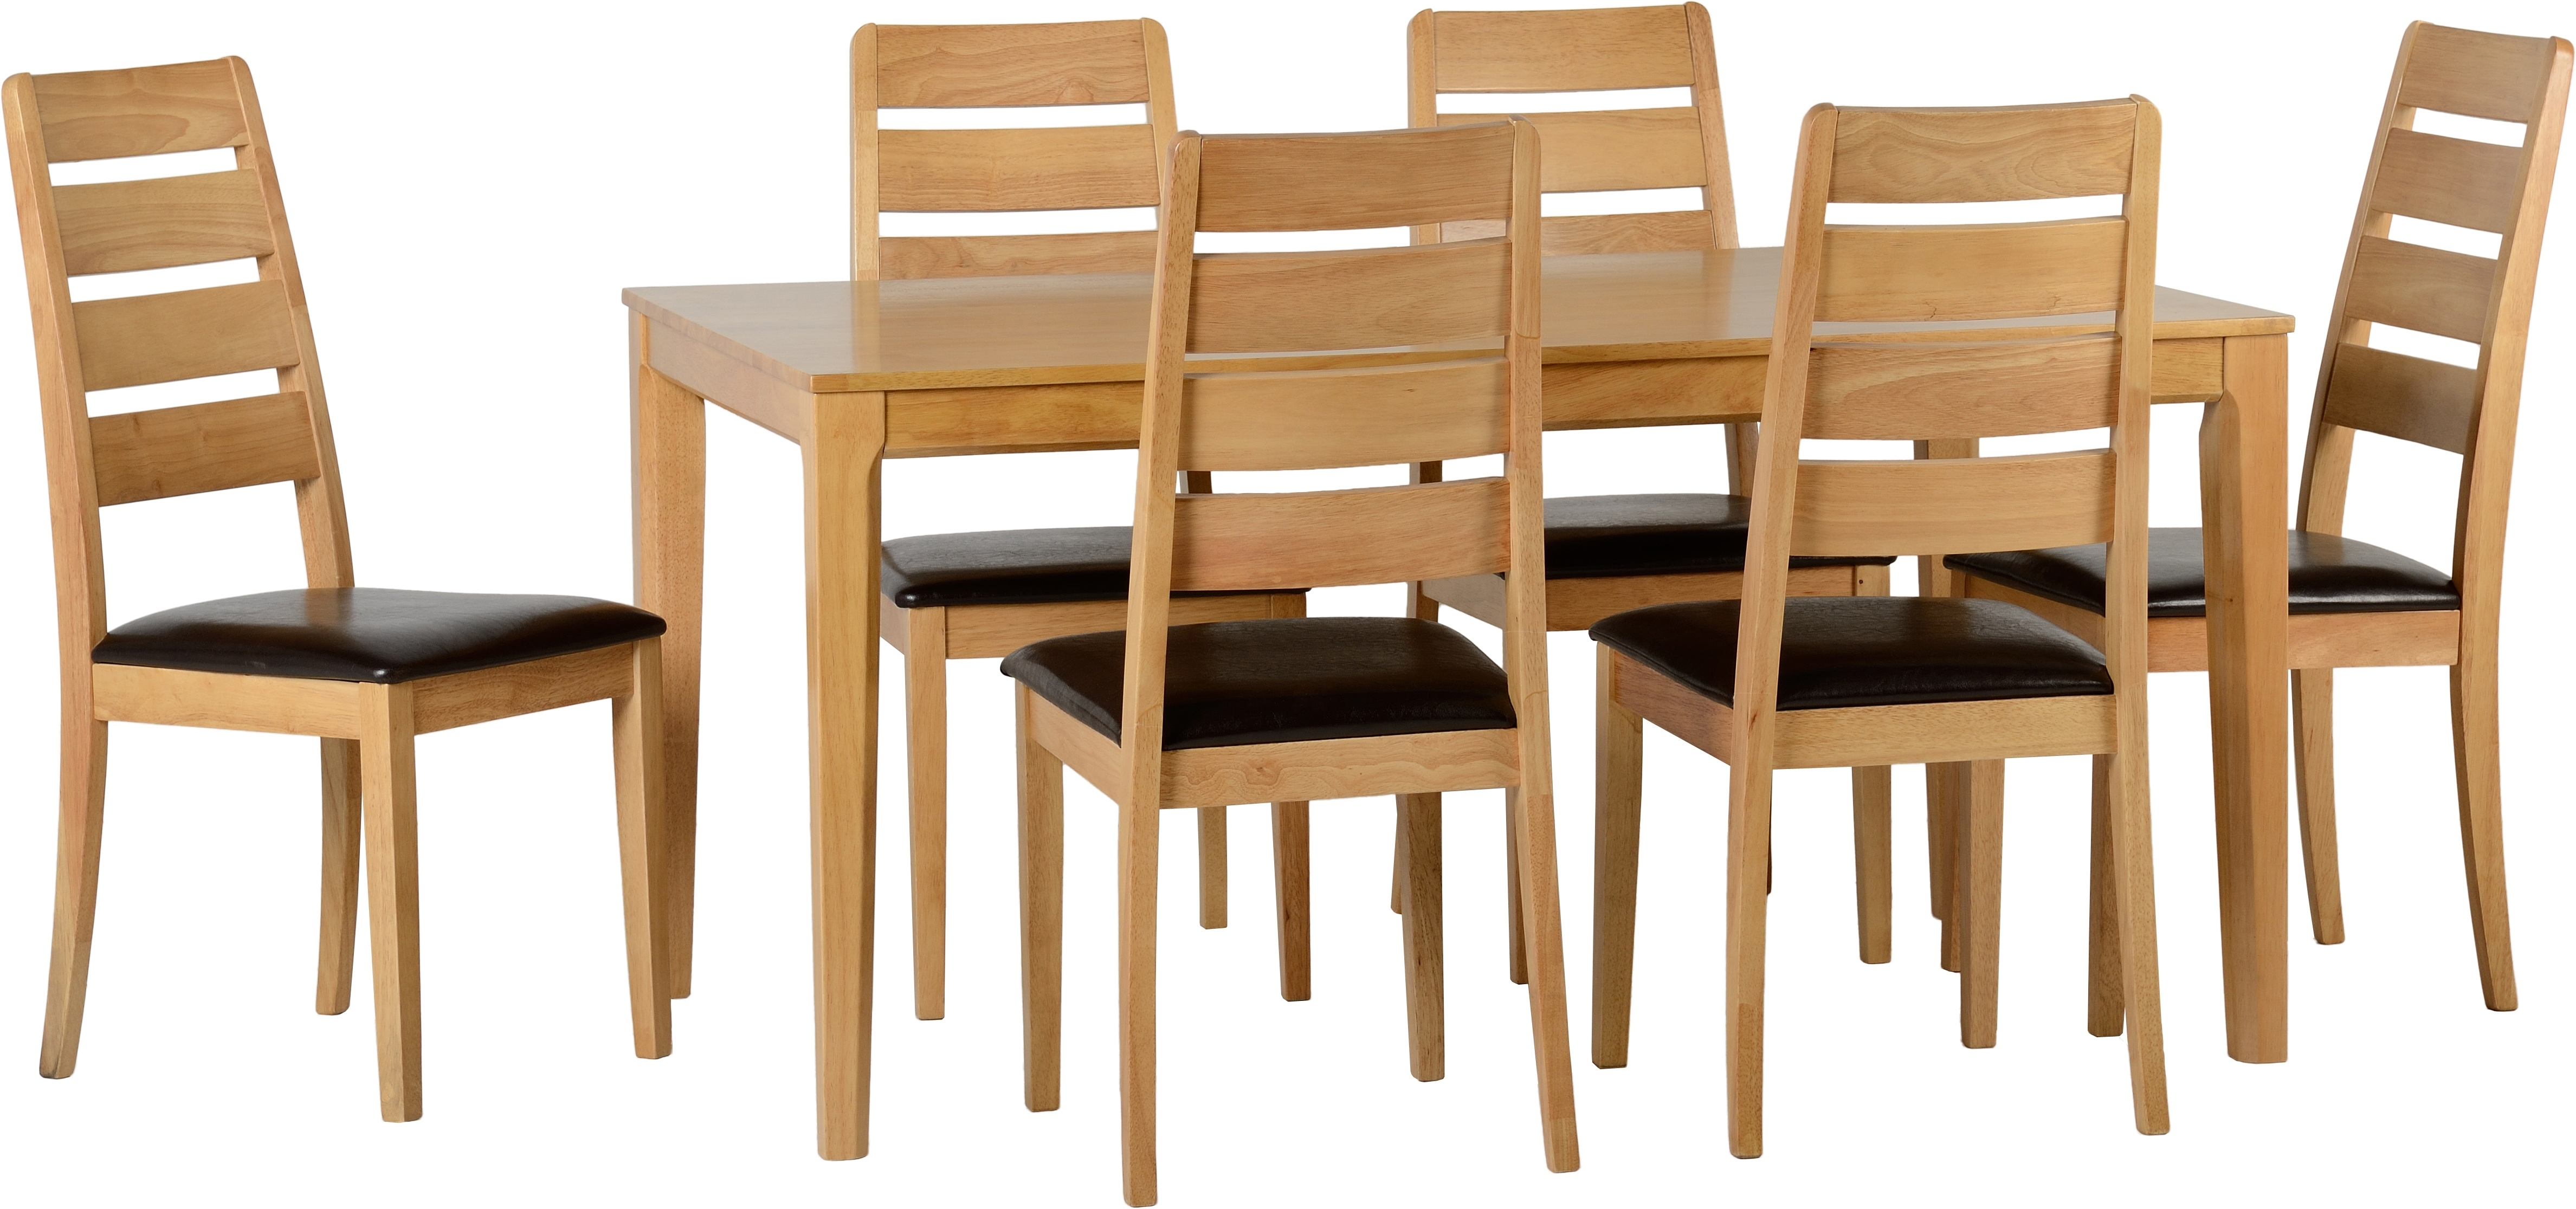 Logan 6 Piece Dining Sets Throughout Famous Wholesale Beds And Furniture (View 14 of 25)